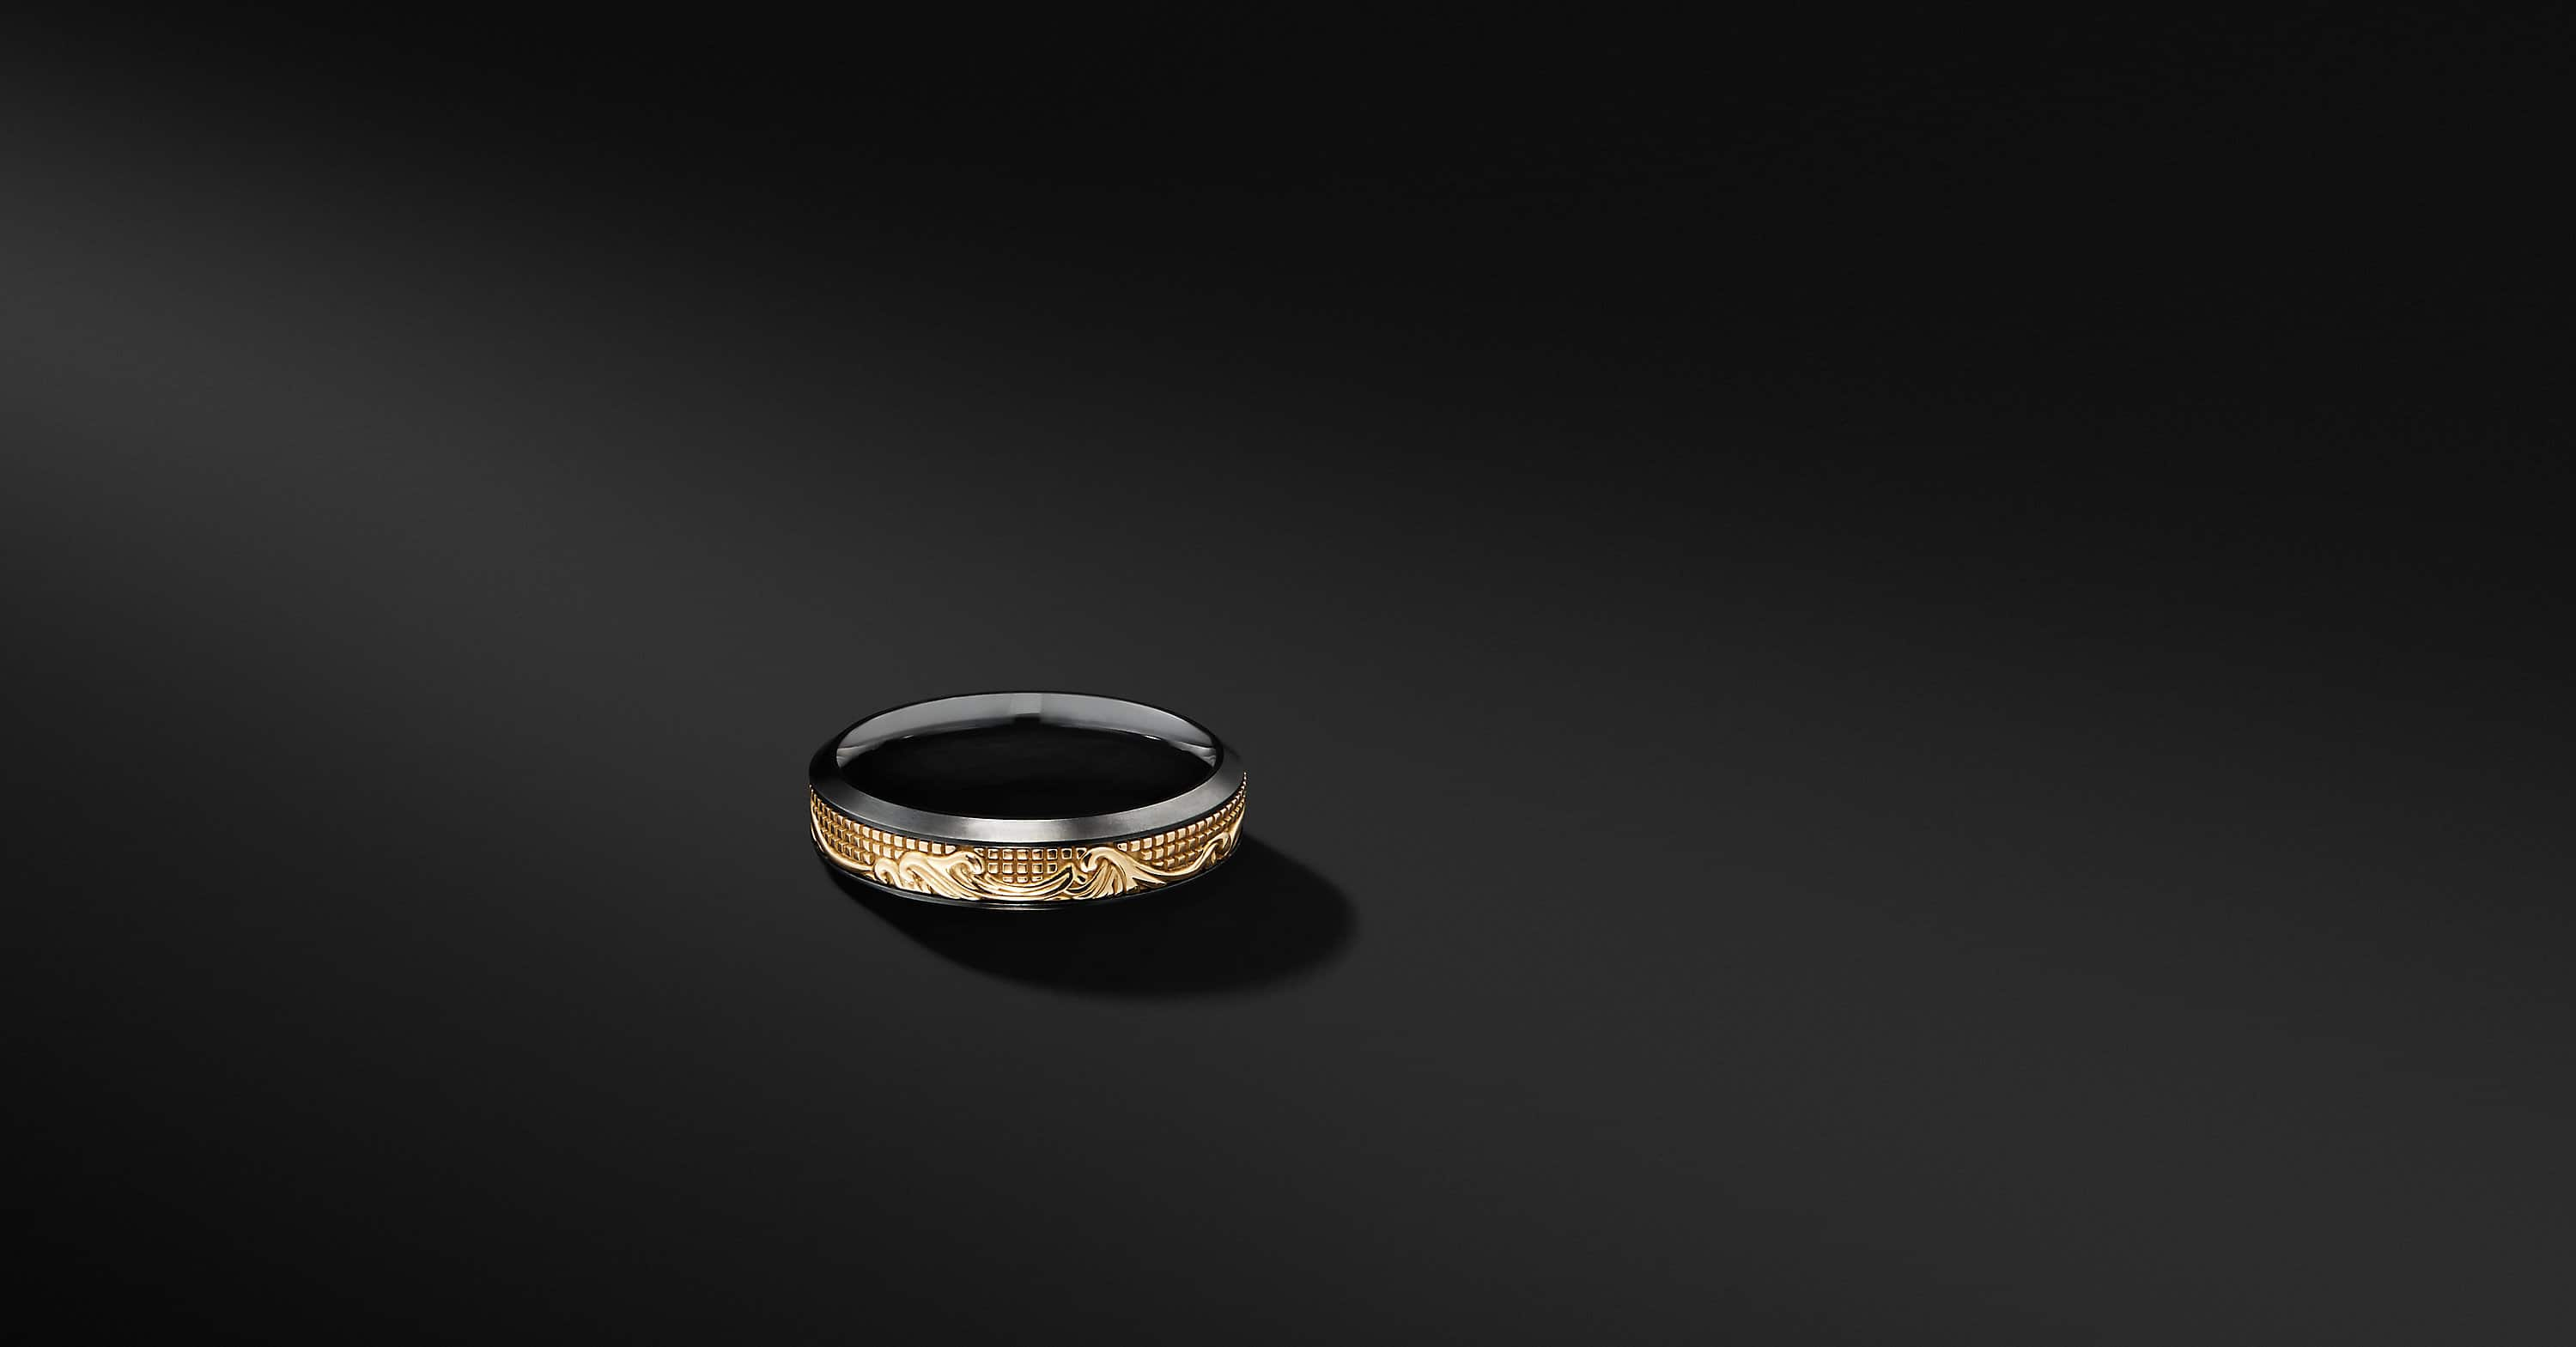 Waves Band Ring in Black Titanium with 18K Yellow Gold, 6mm